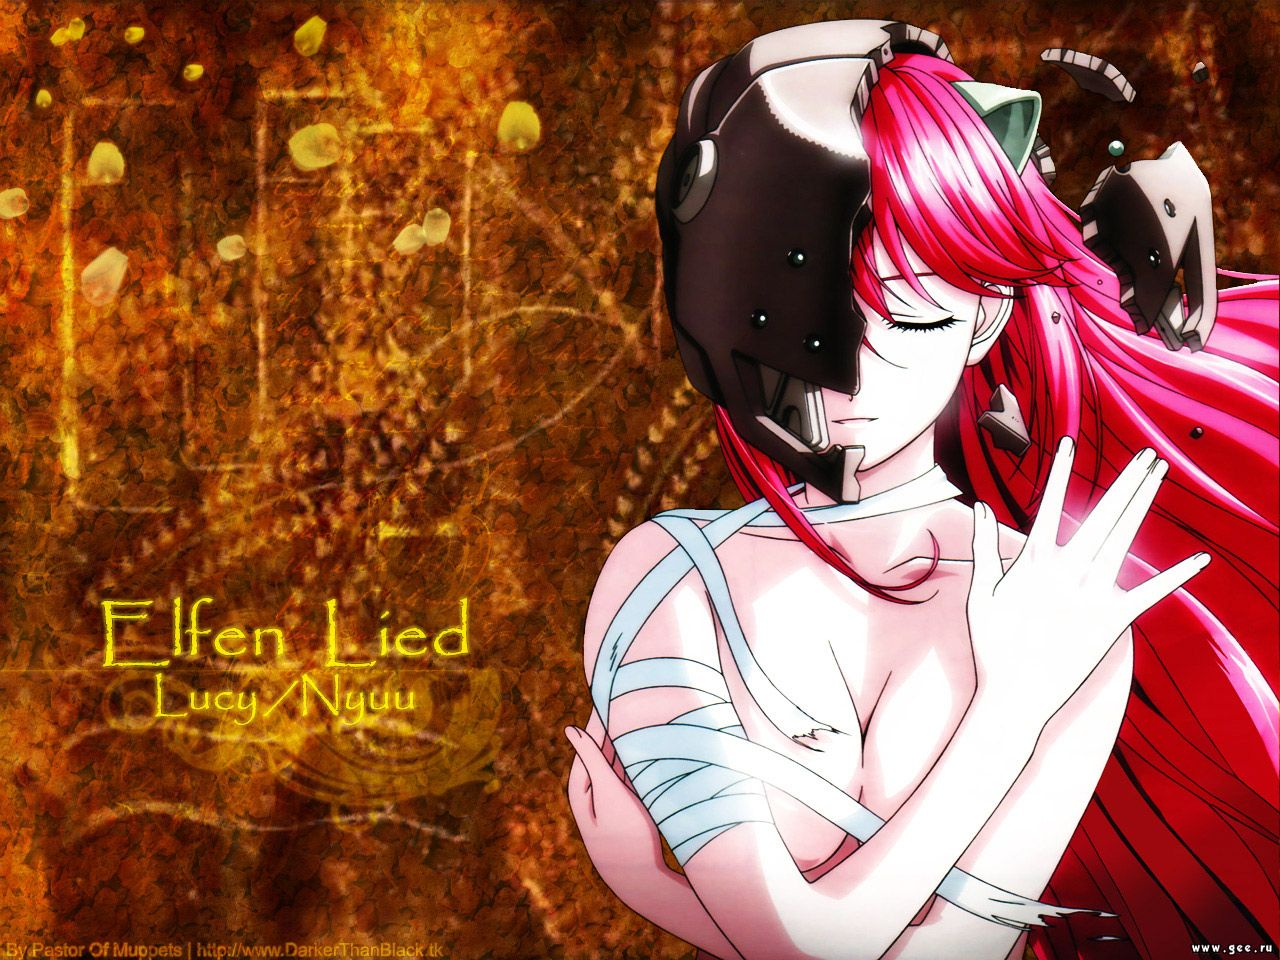 Wallpaper elfen lied Manga